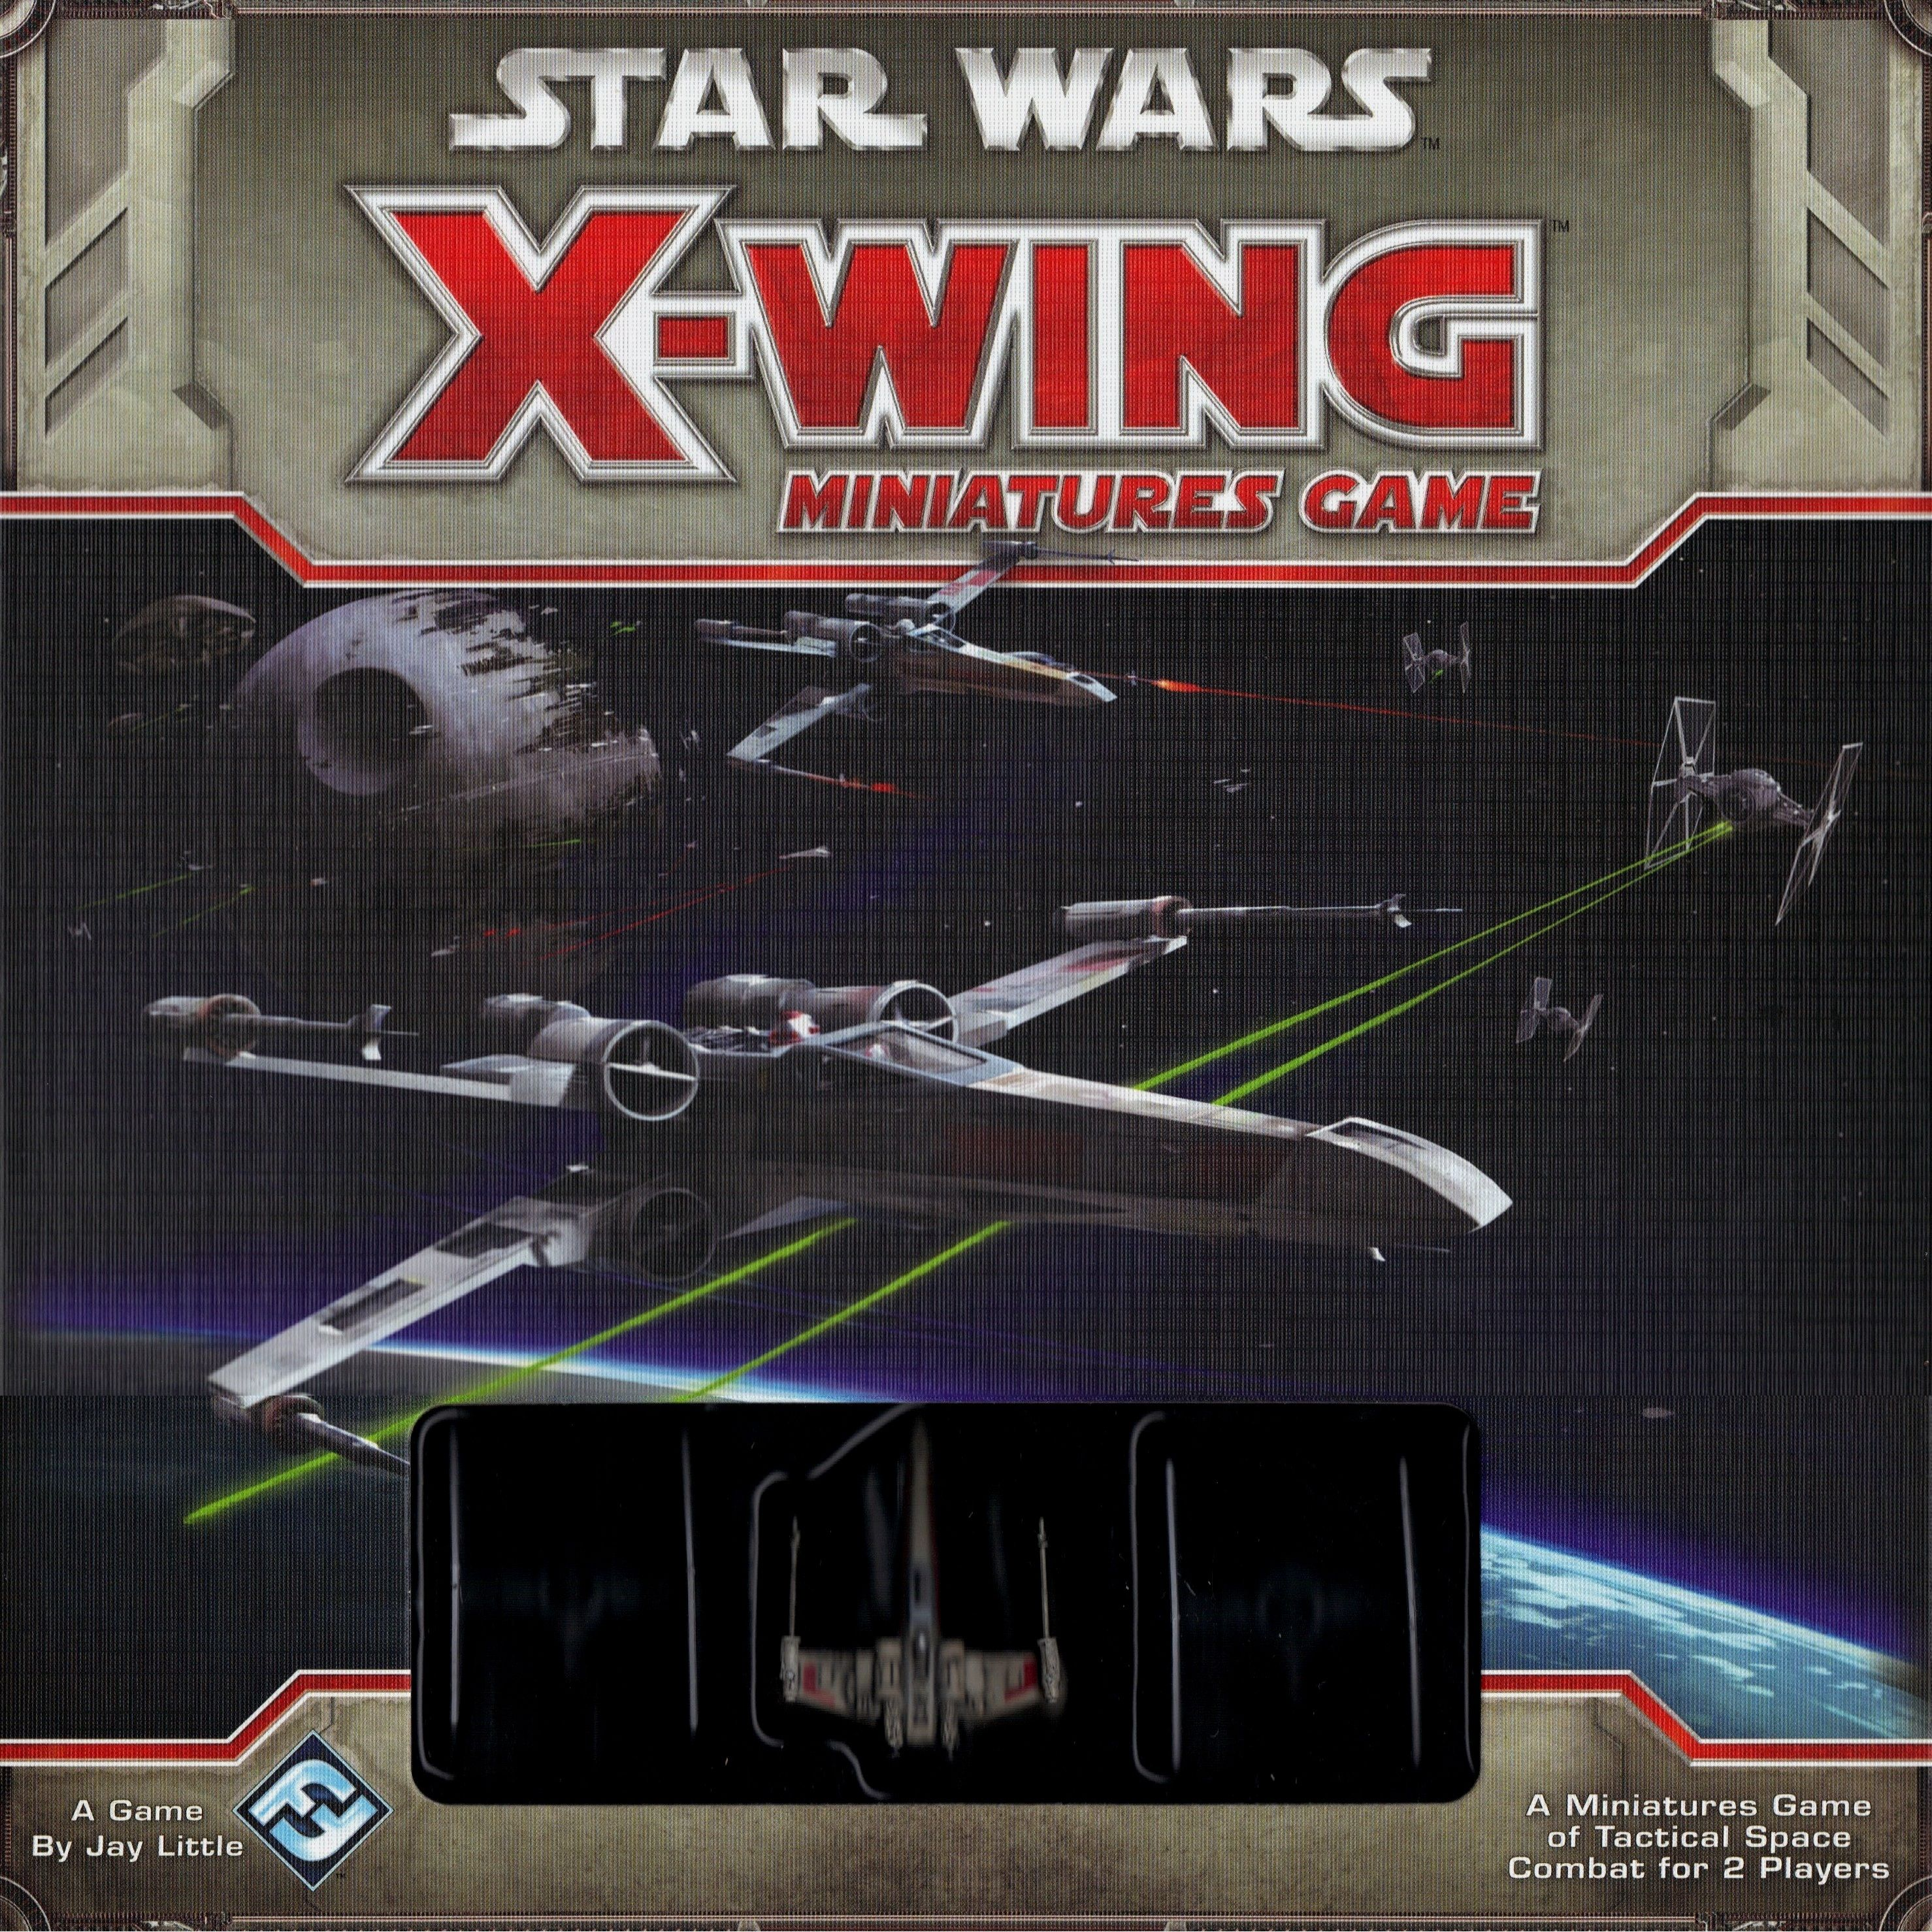 Star Wars X Wing Miniatures Game Image Boardgamegeek X Wing